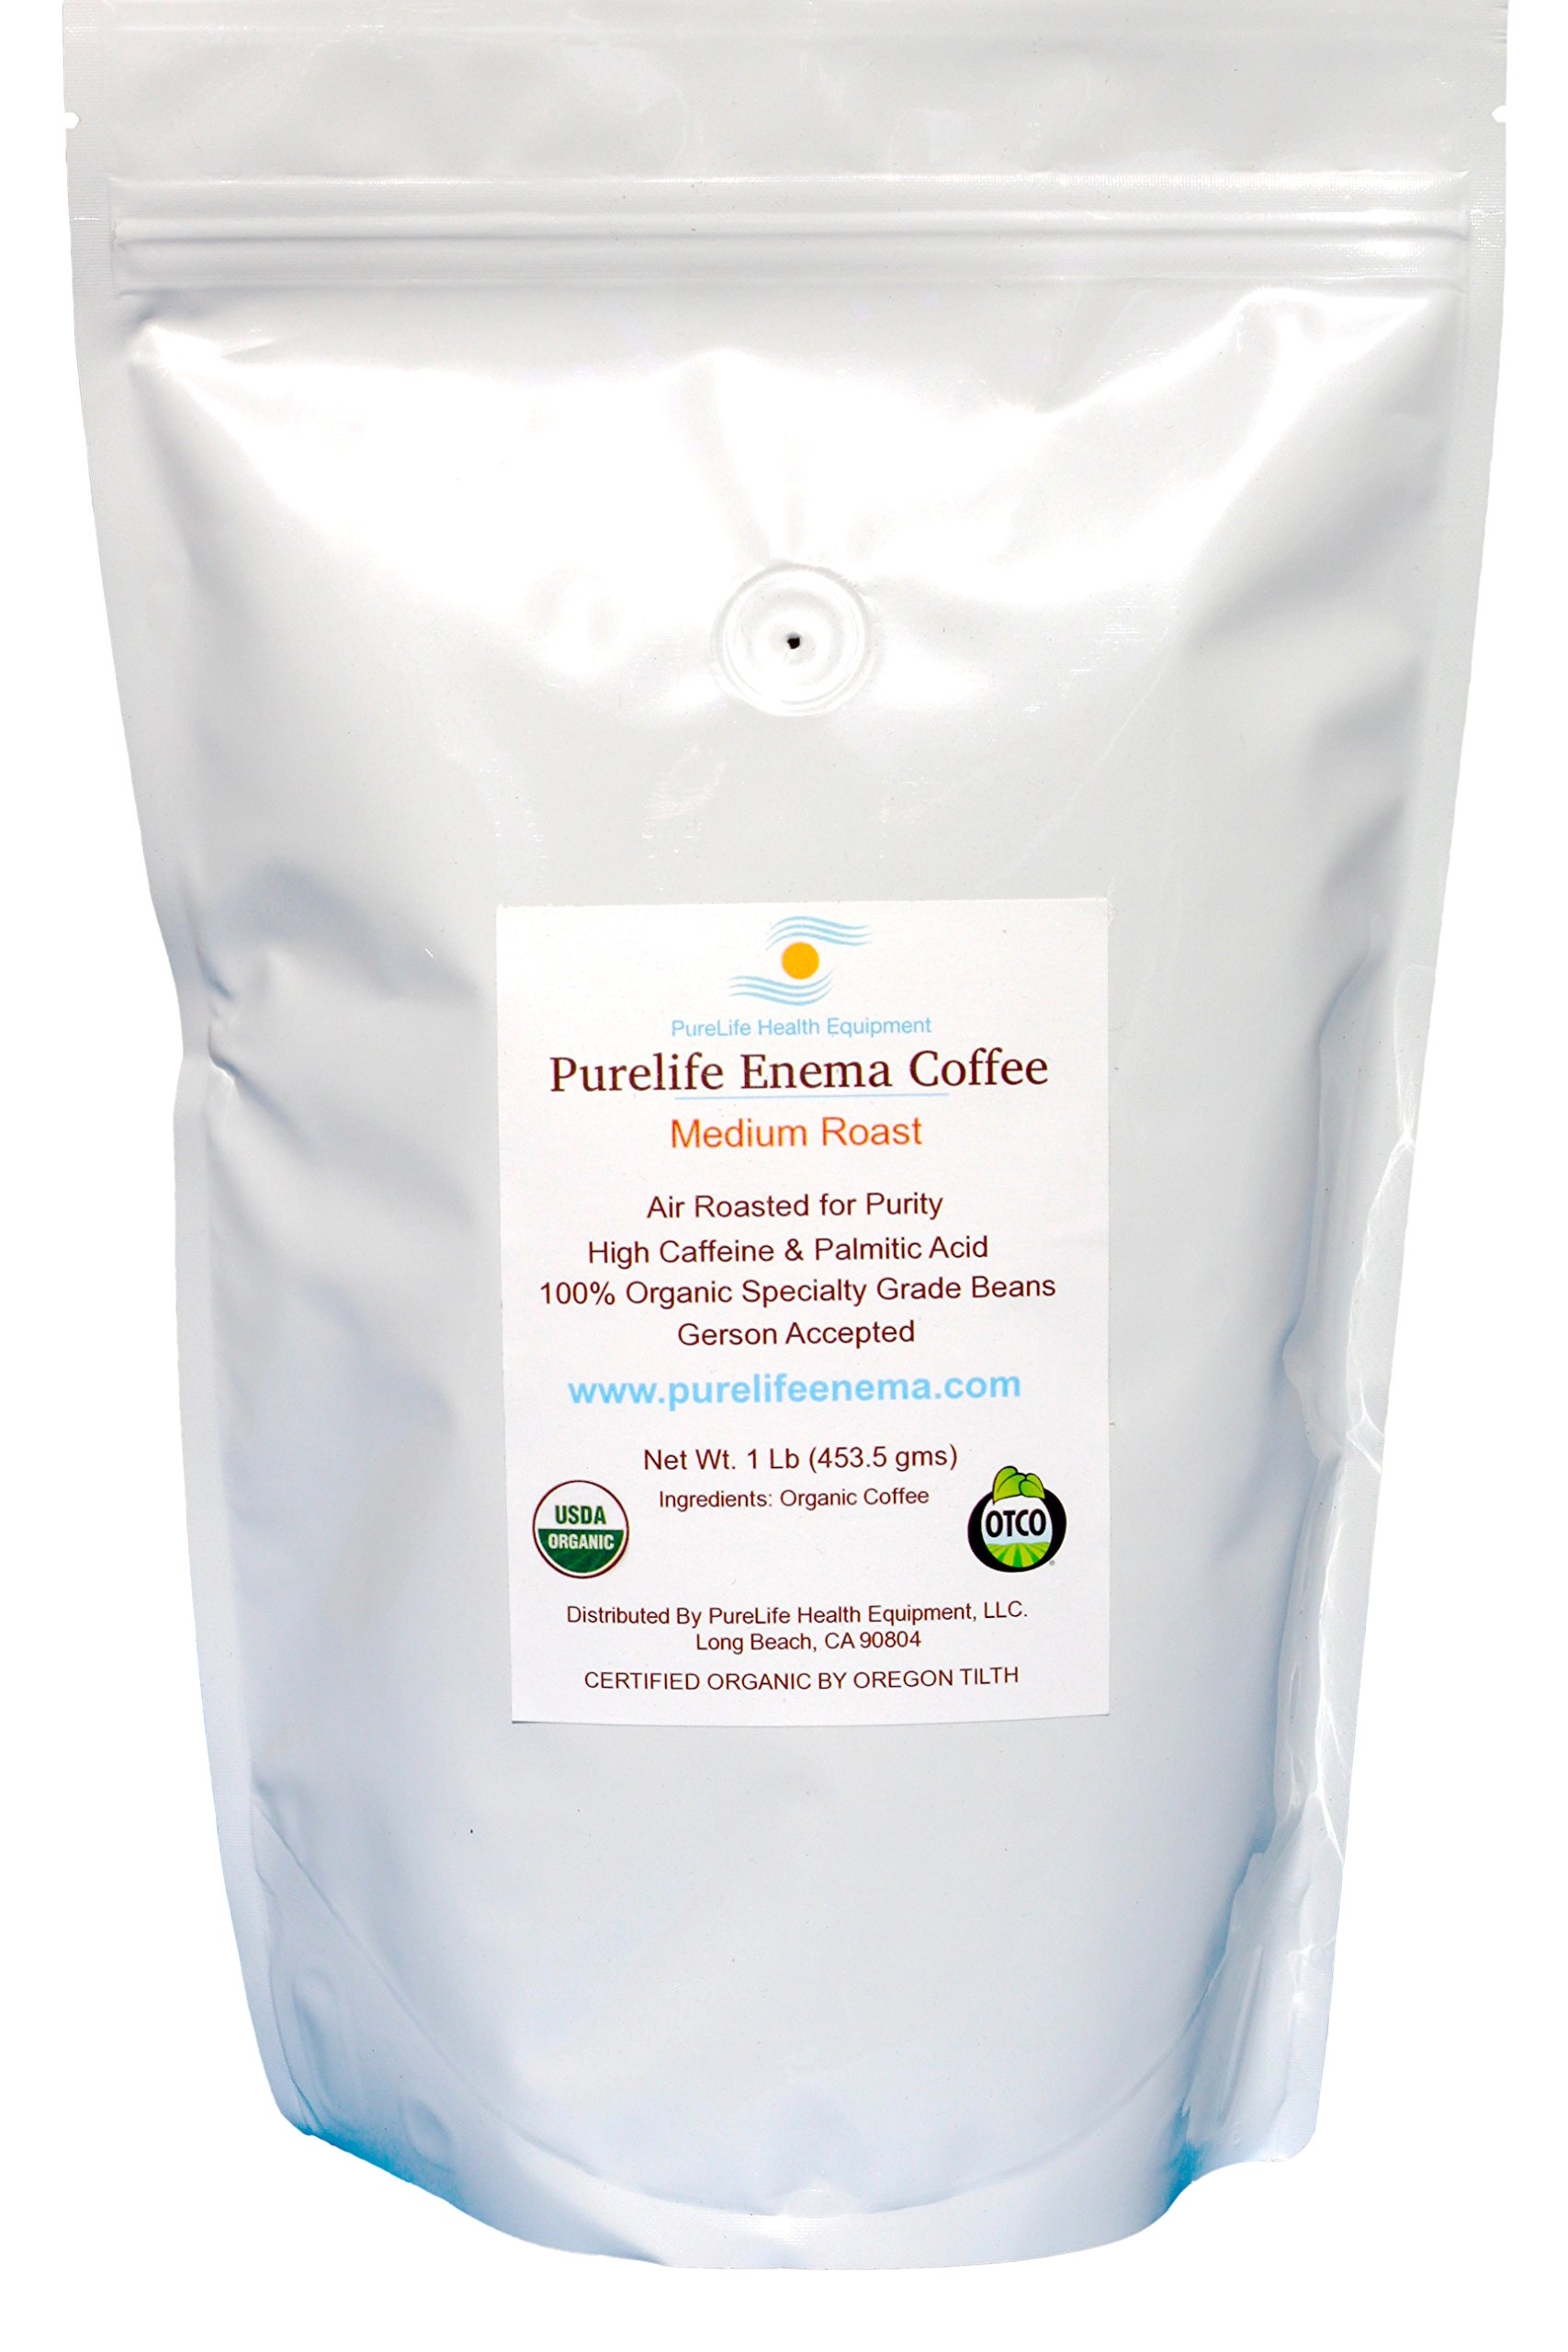 PureLife Enema Coffee- 1 Pound, Organic Medium Air Roast - Gerson Accepted - Without Mold or Fungus - Ships Direct From Manufacturer